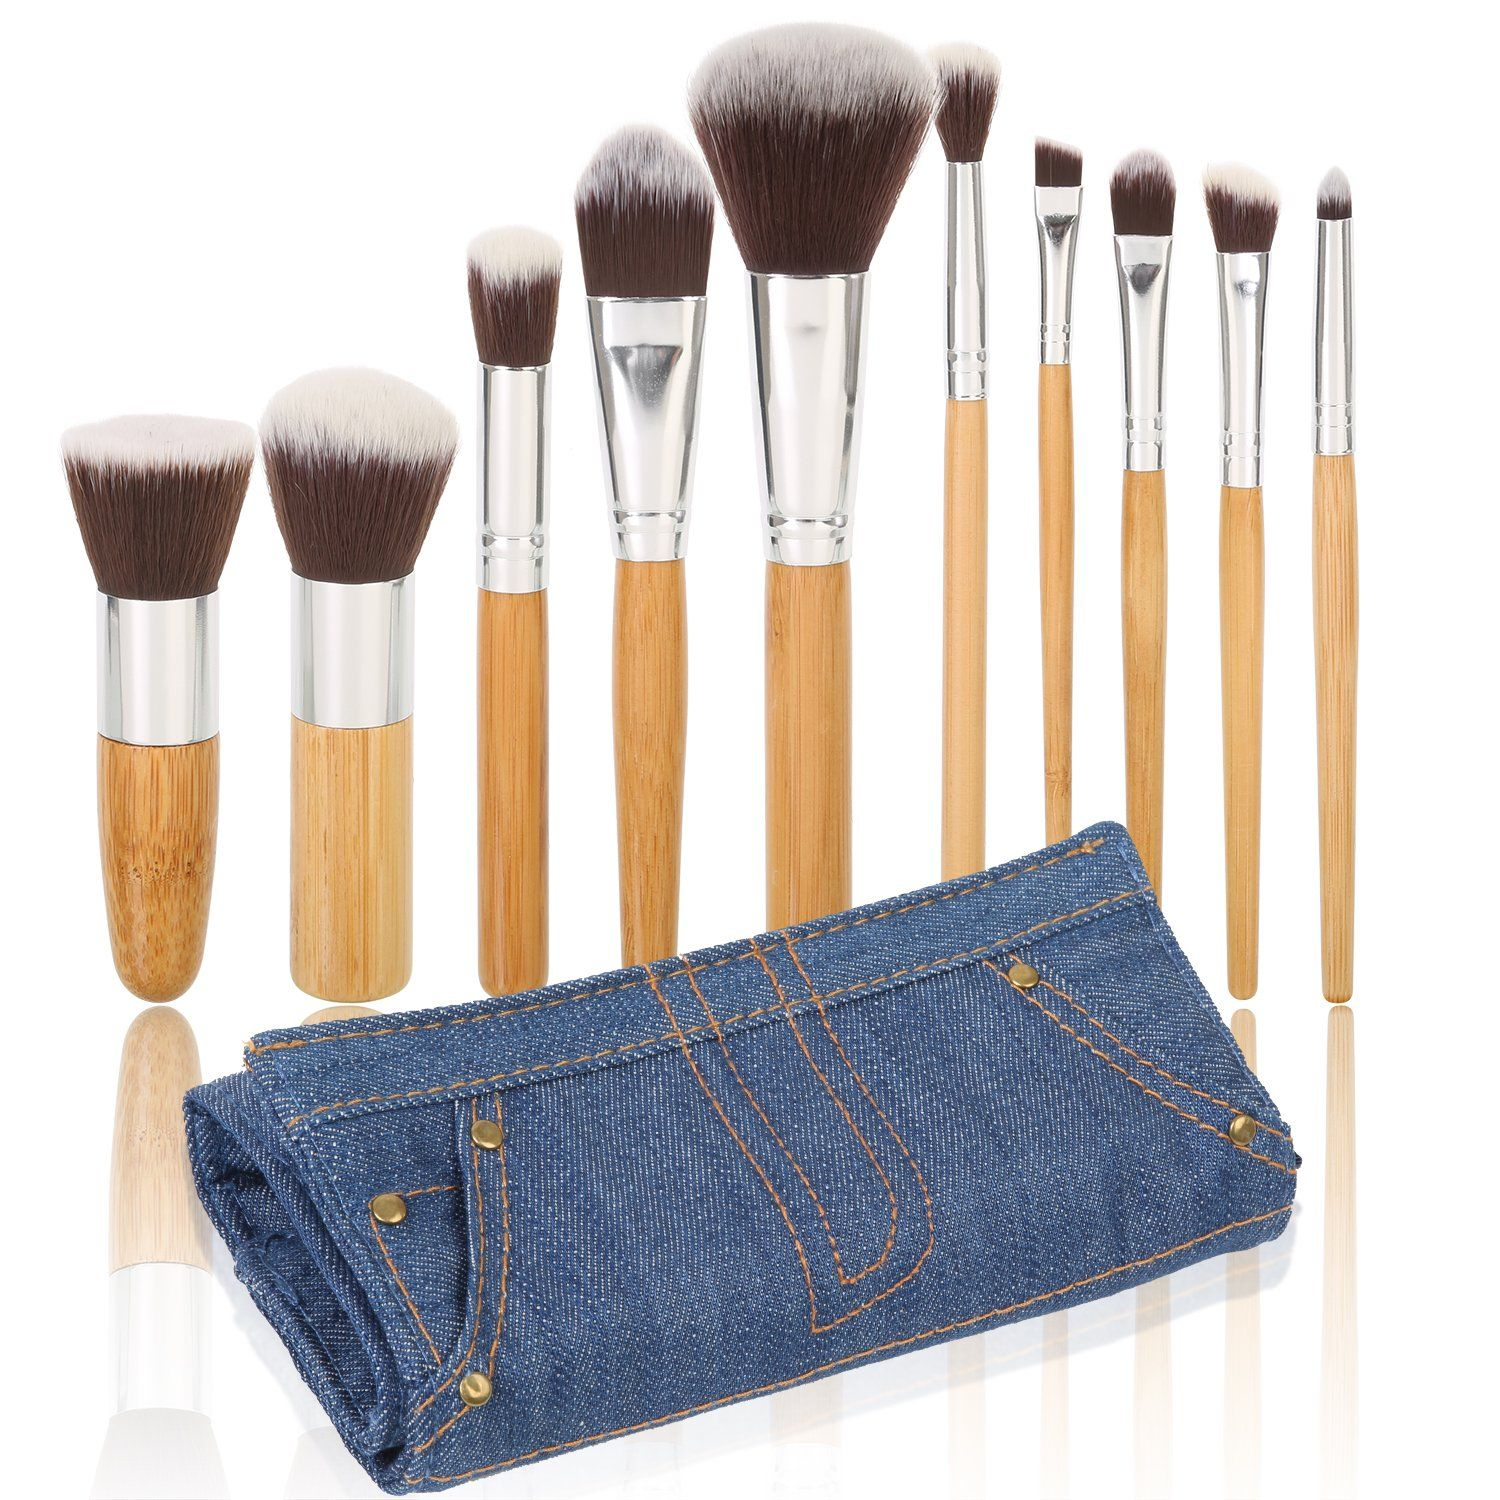 Ivaton Pro Signature Brush Set Includes 10 Pieces